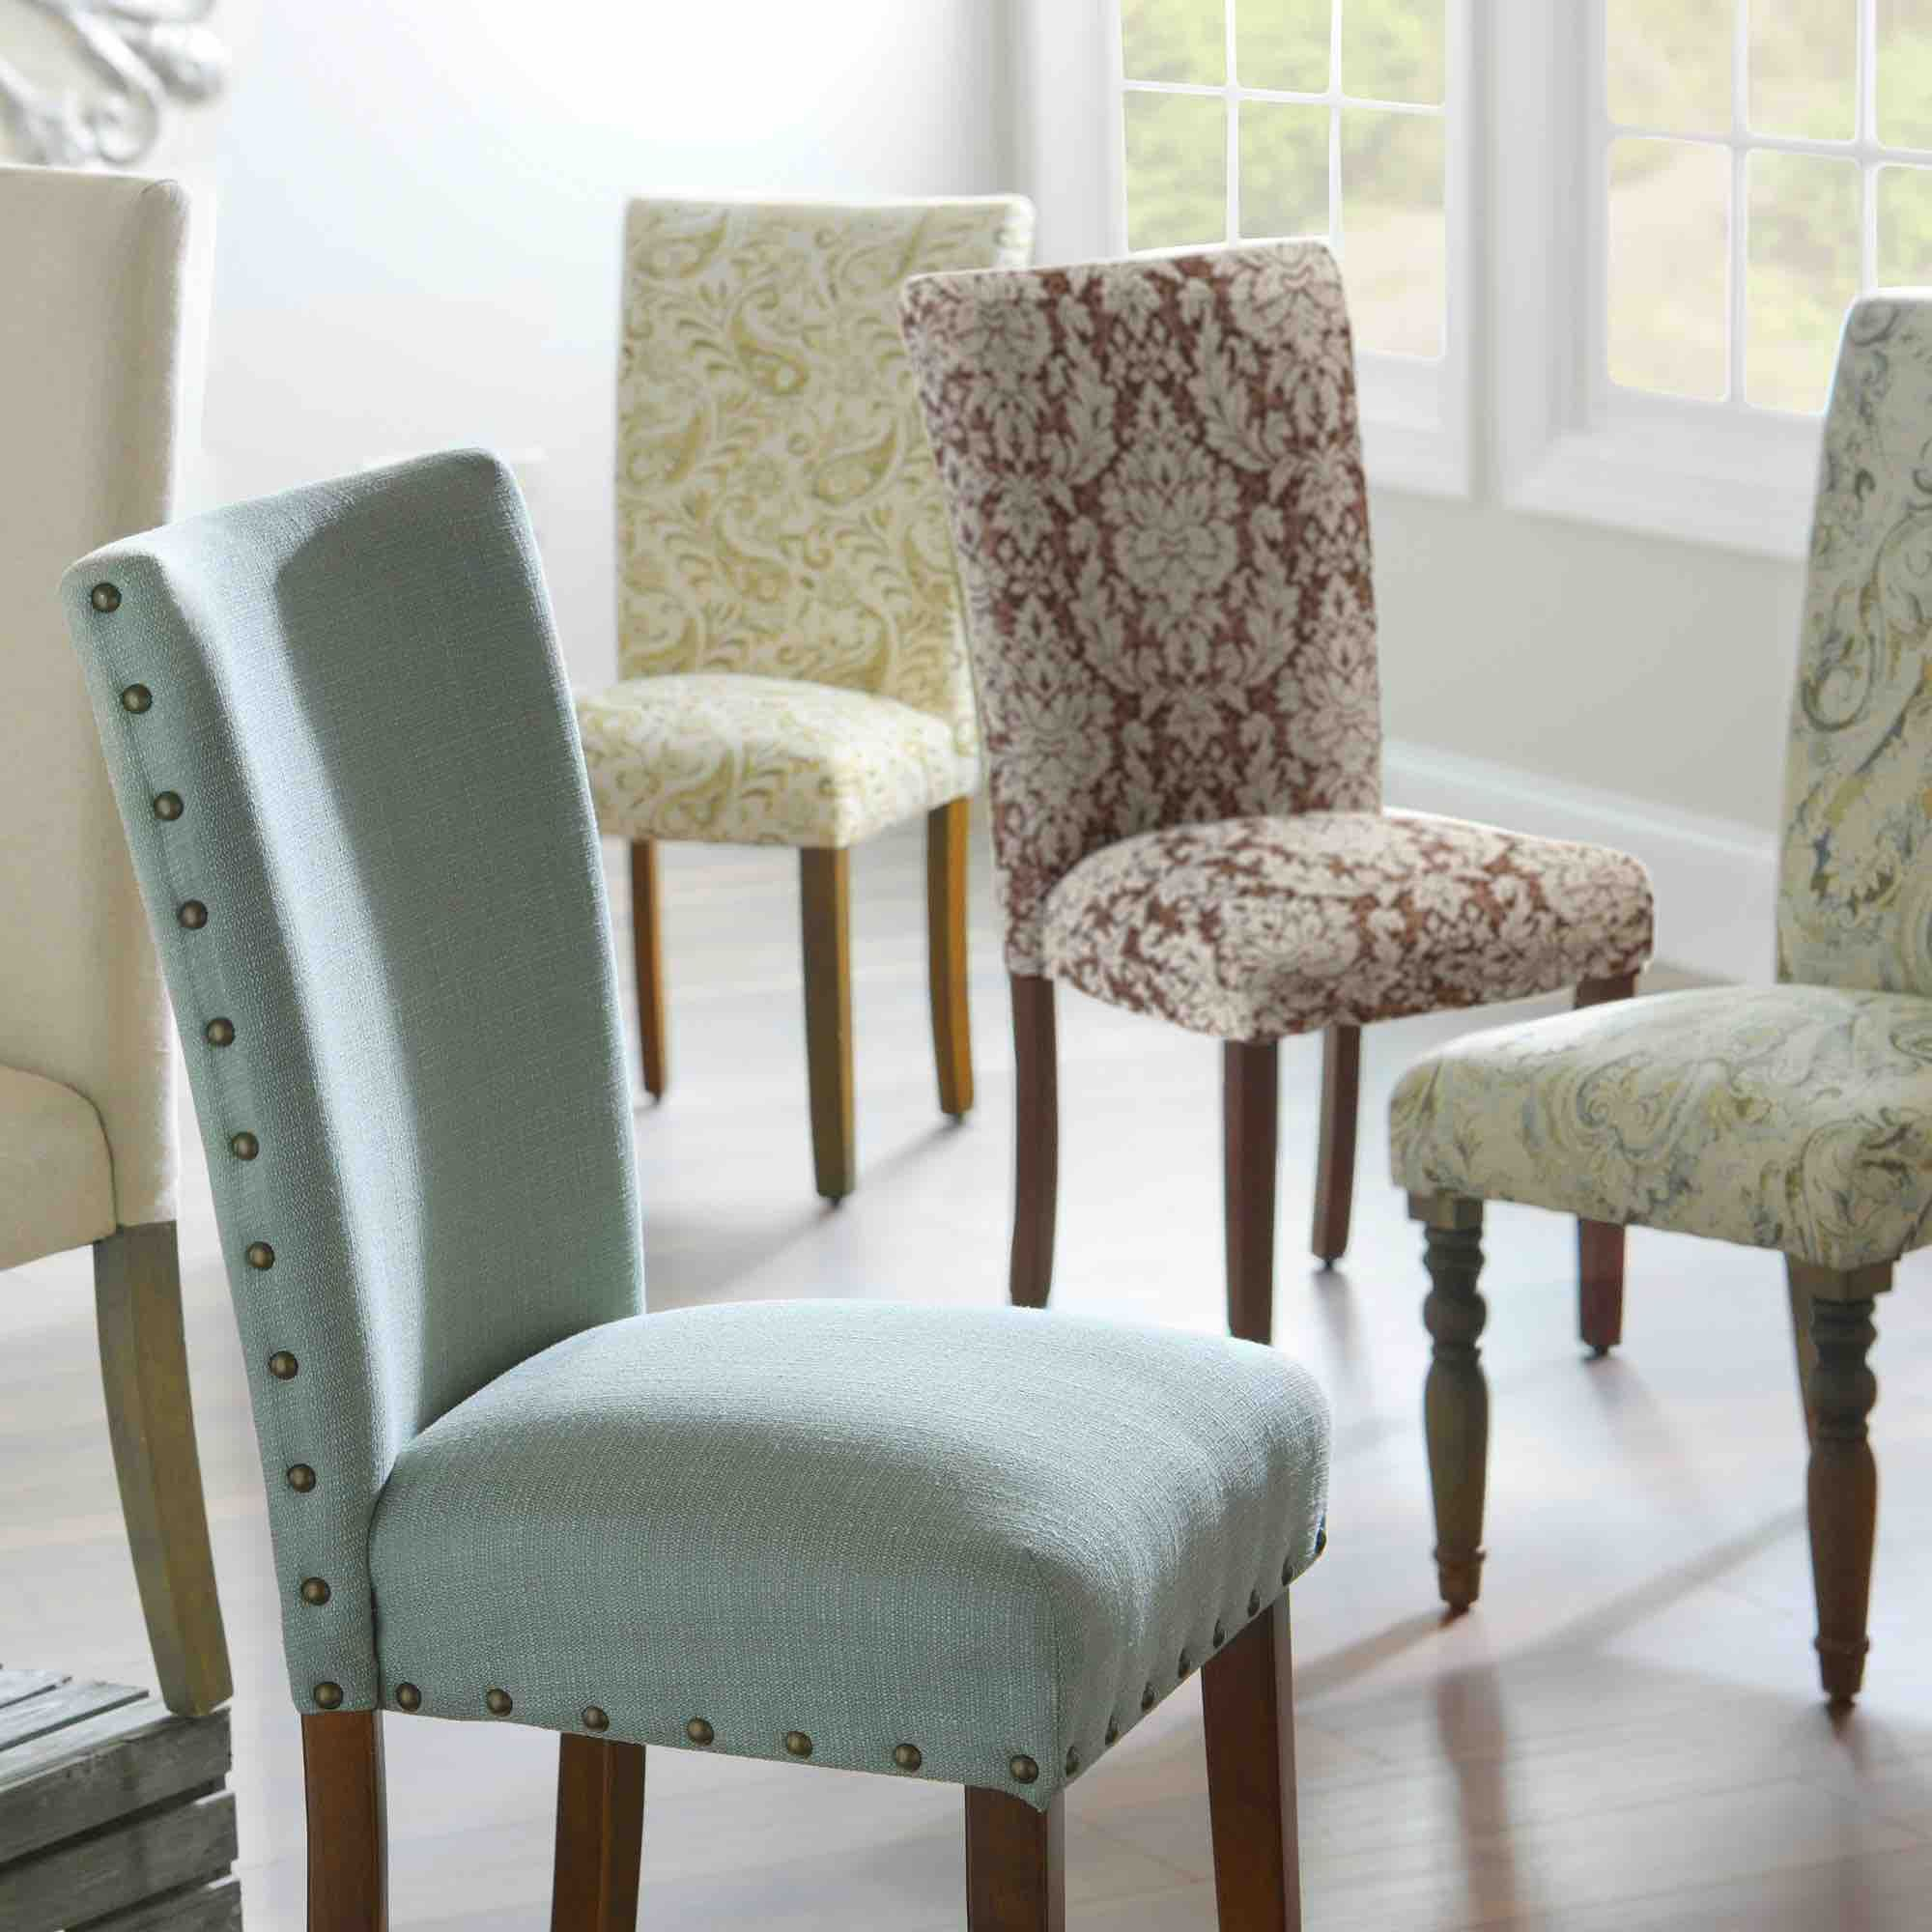 Dinning Chairs Fabric Dining Room Rooms Set Chair White And Antique Brass